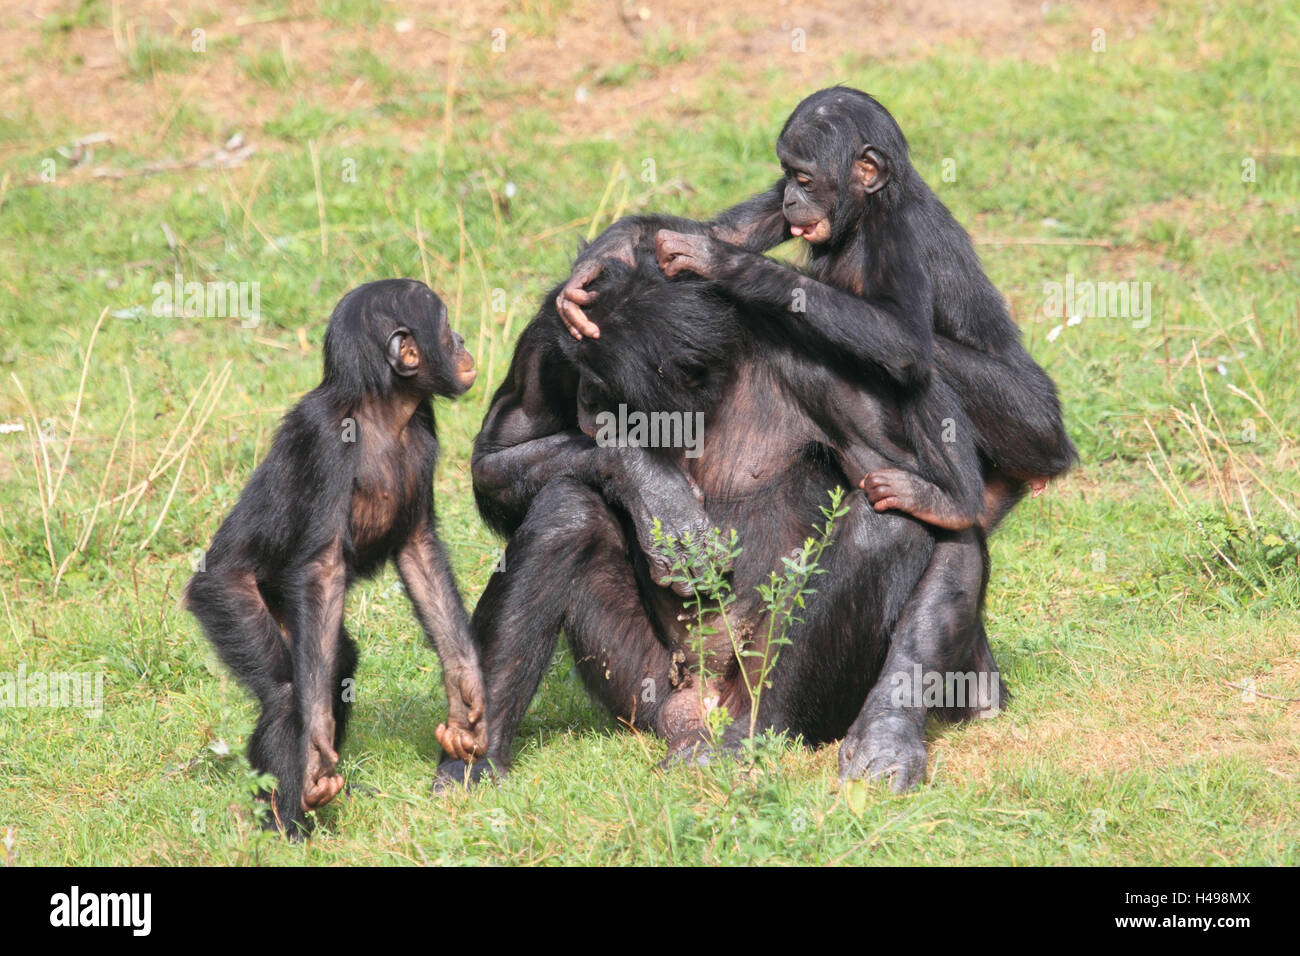 Bonobo with two young animals, - Stock Image